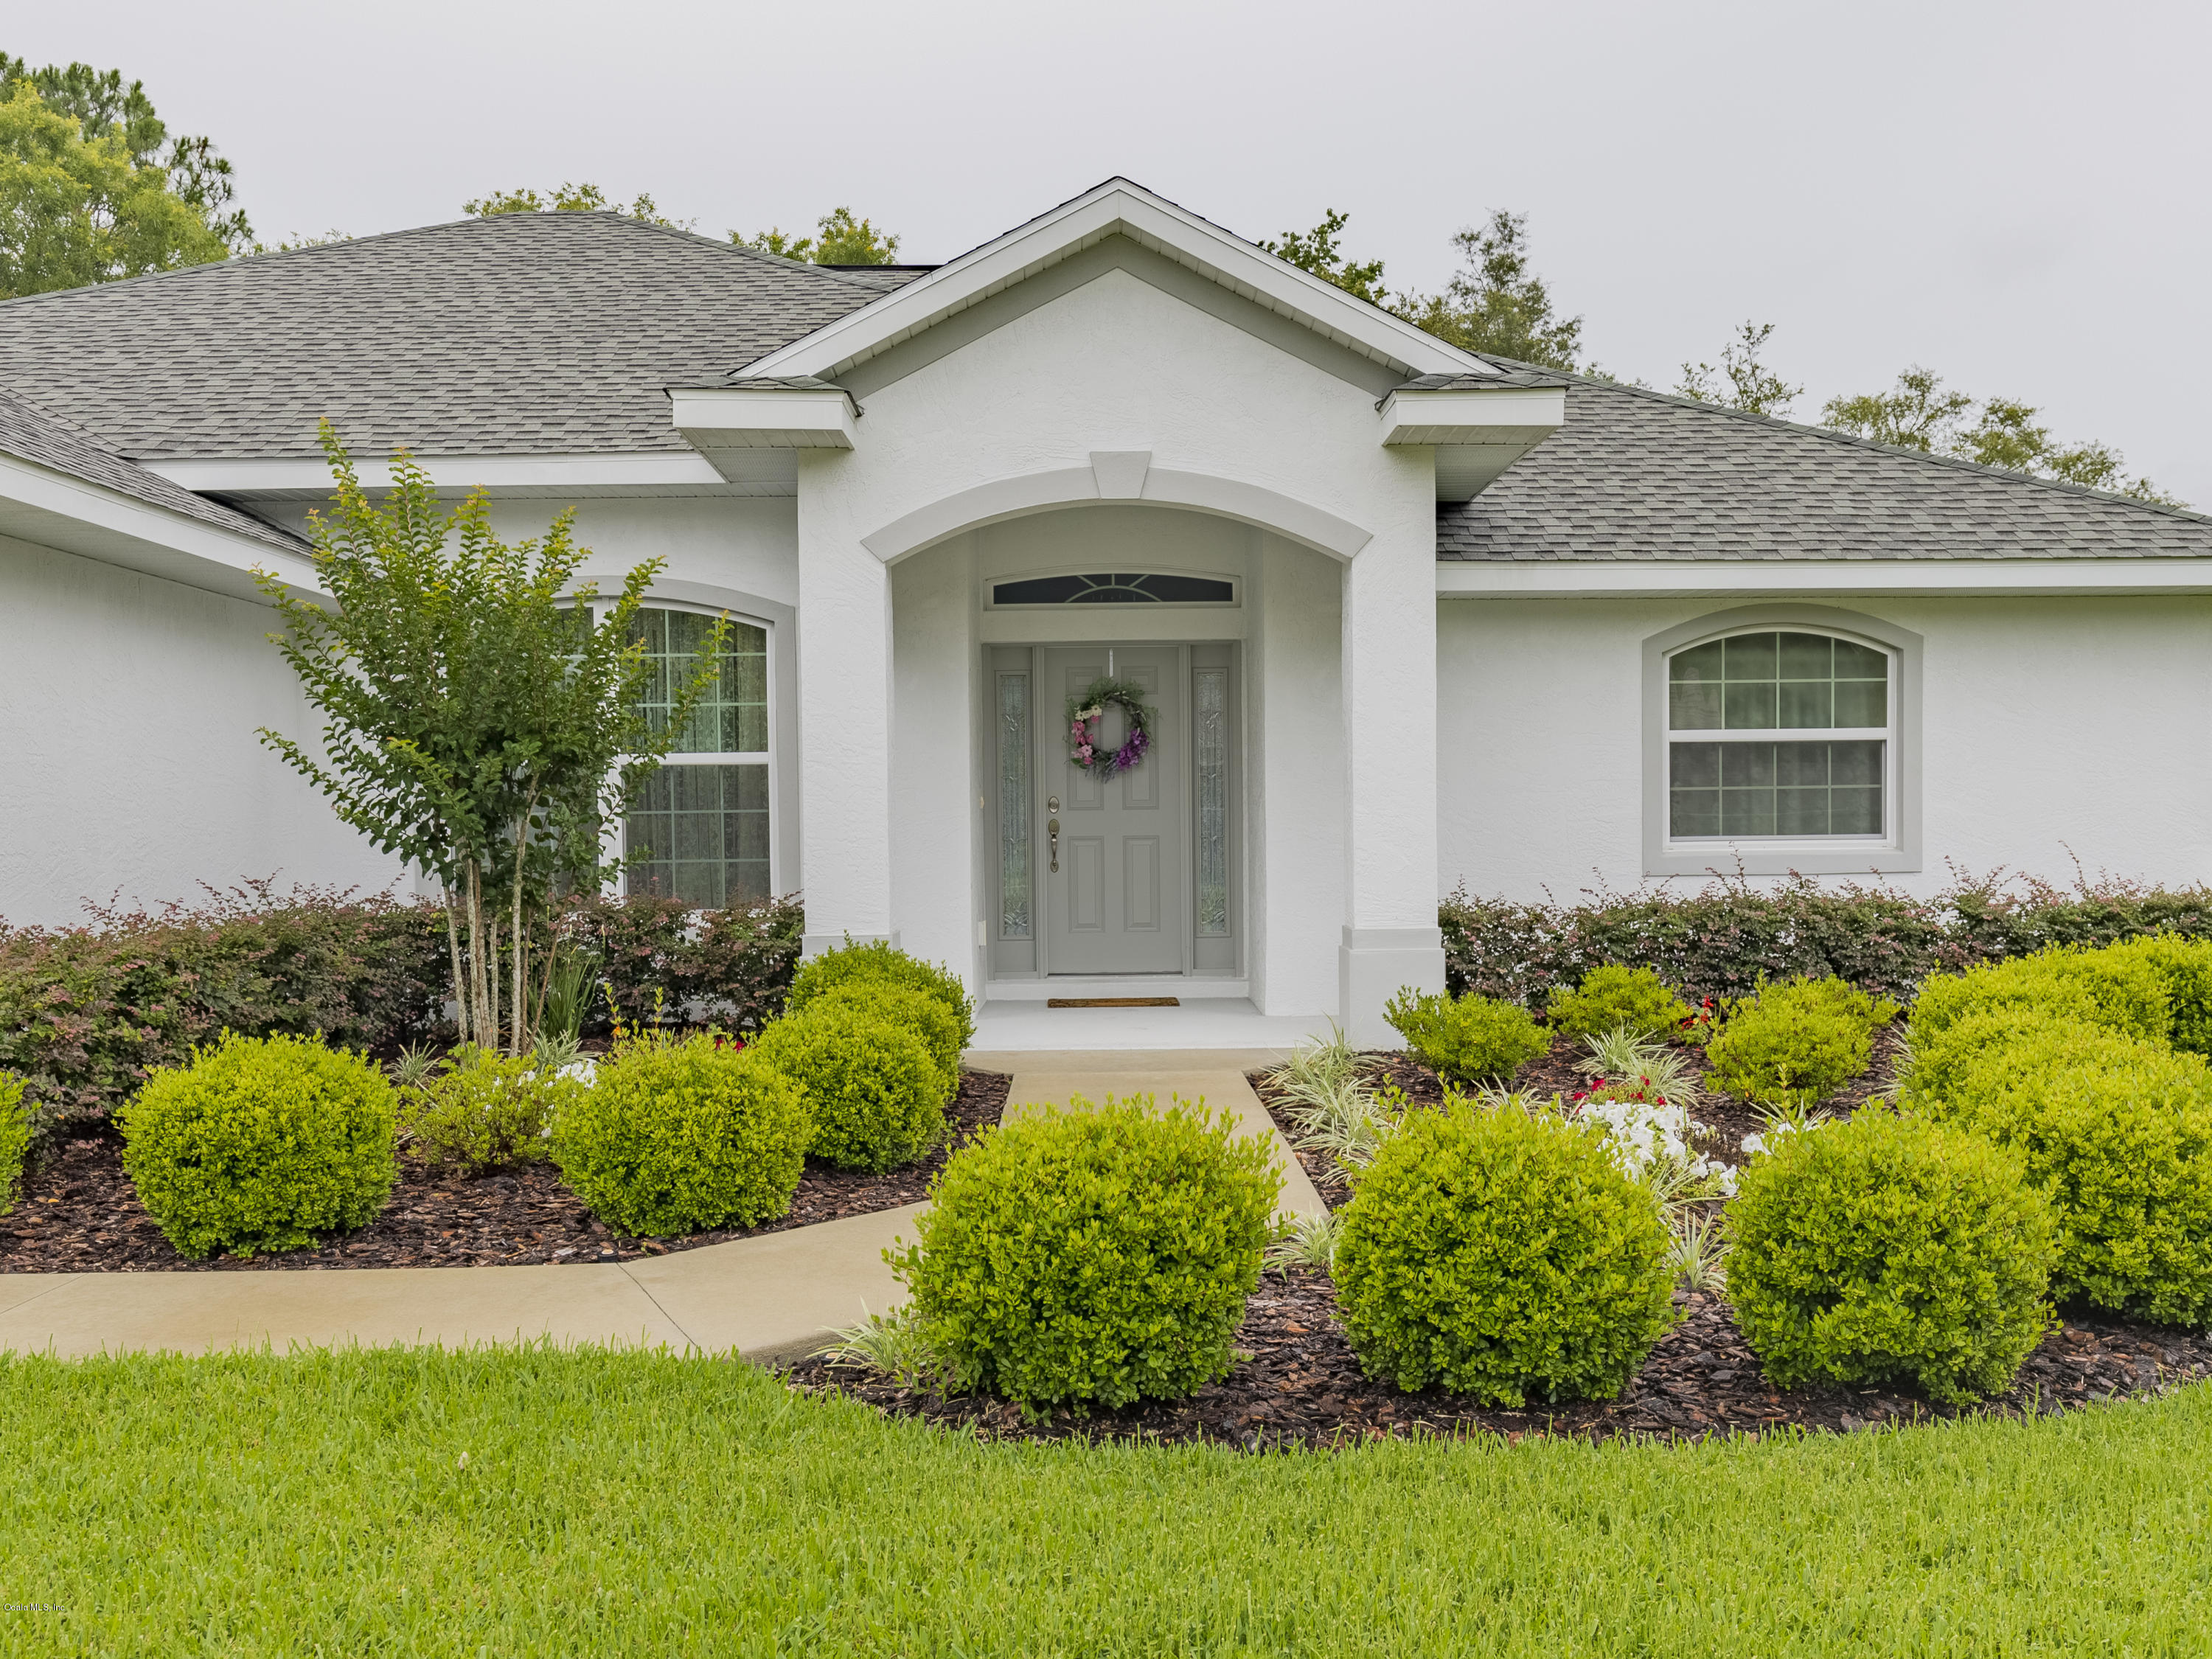 75 GOLF VIEW DRIVE, OCALA, FL 34472